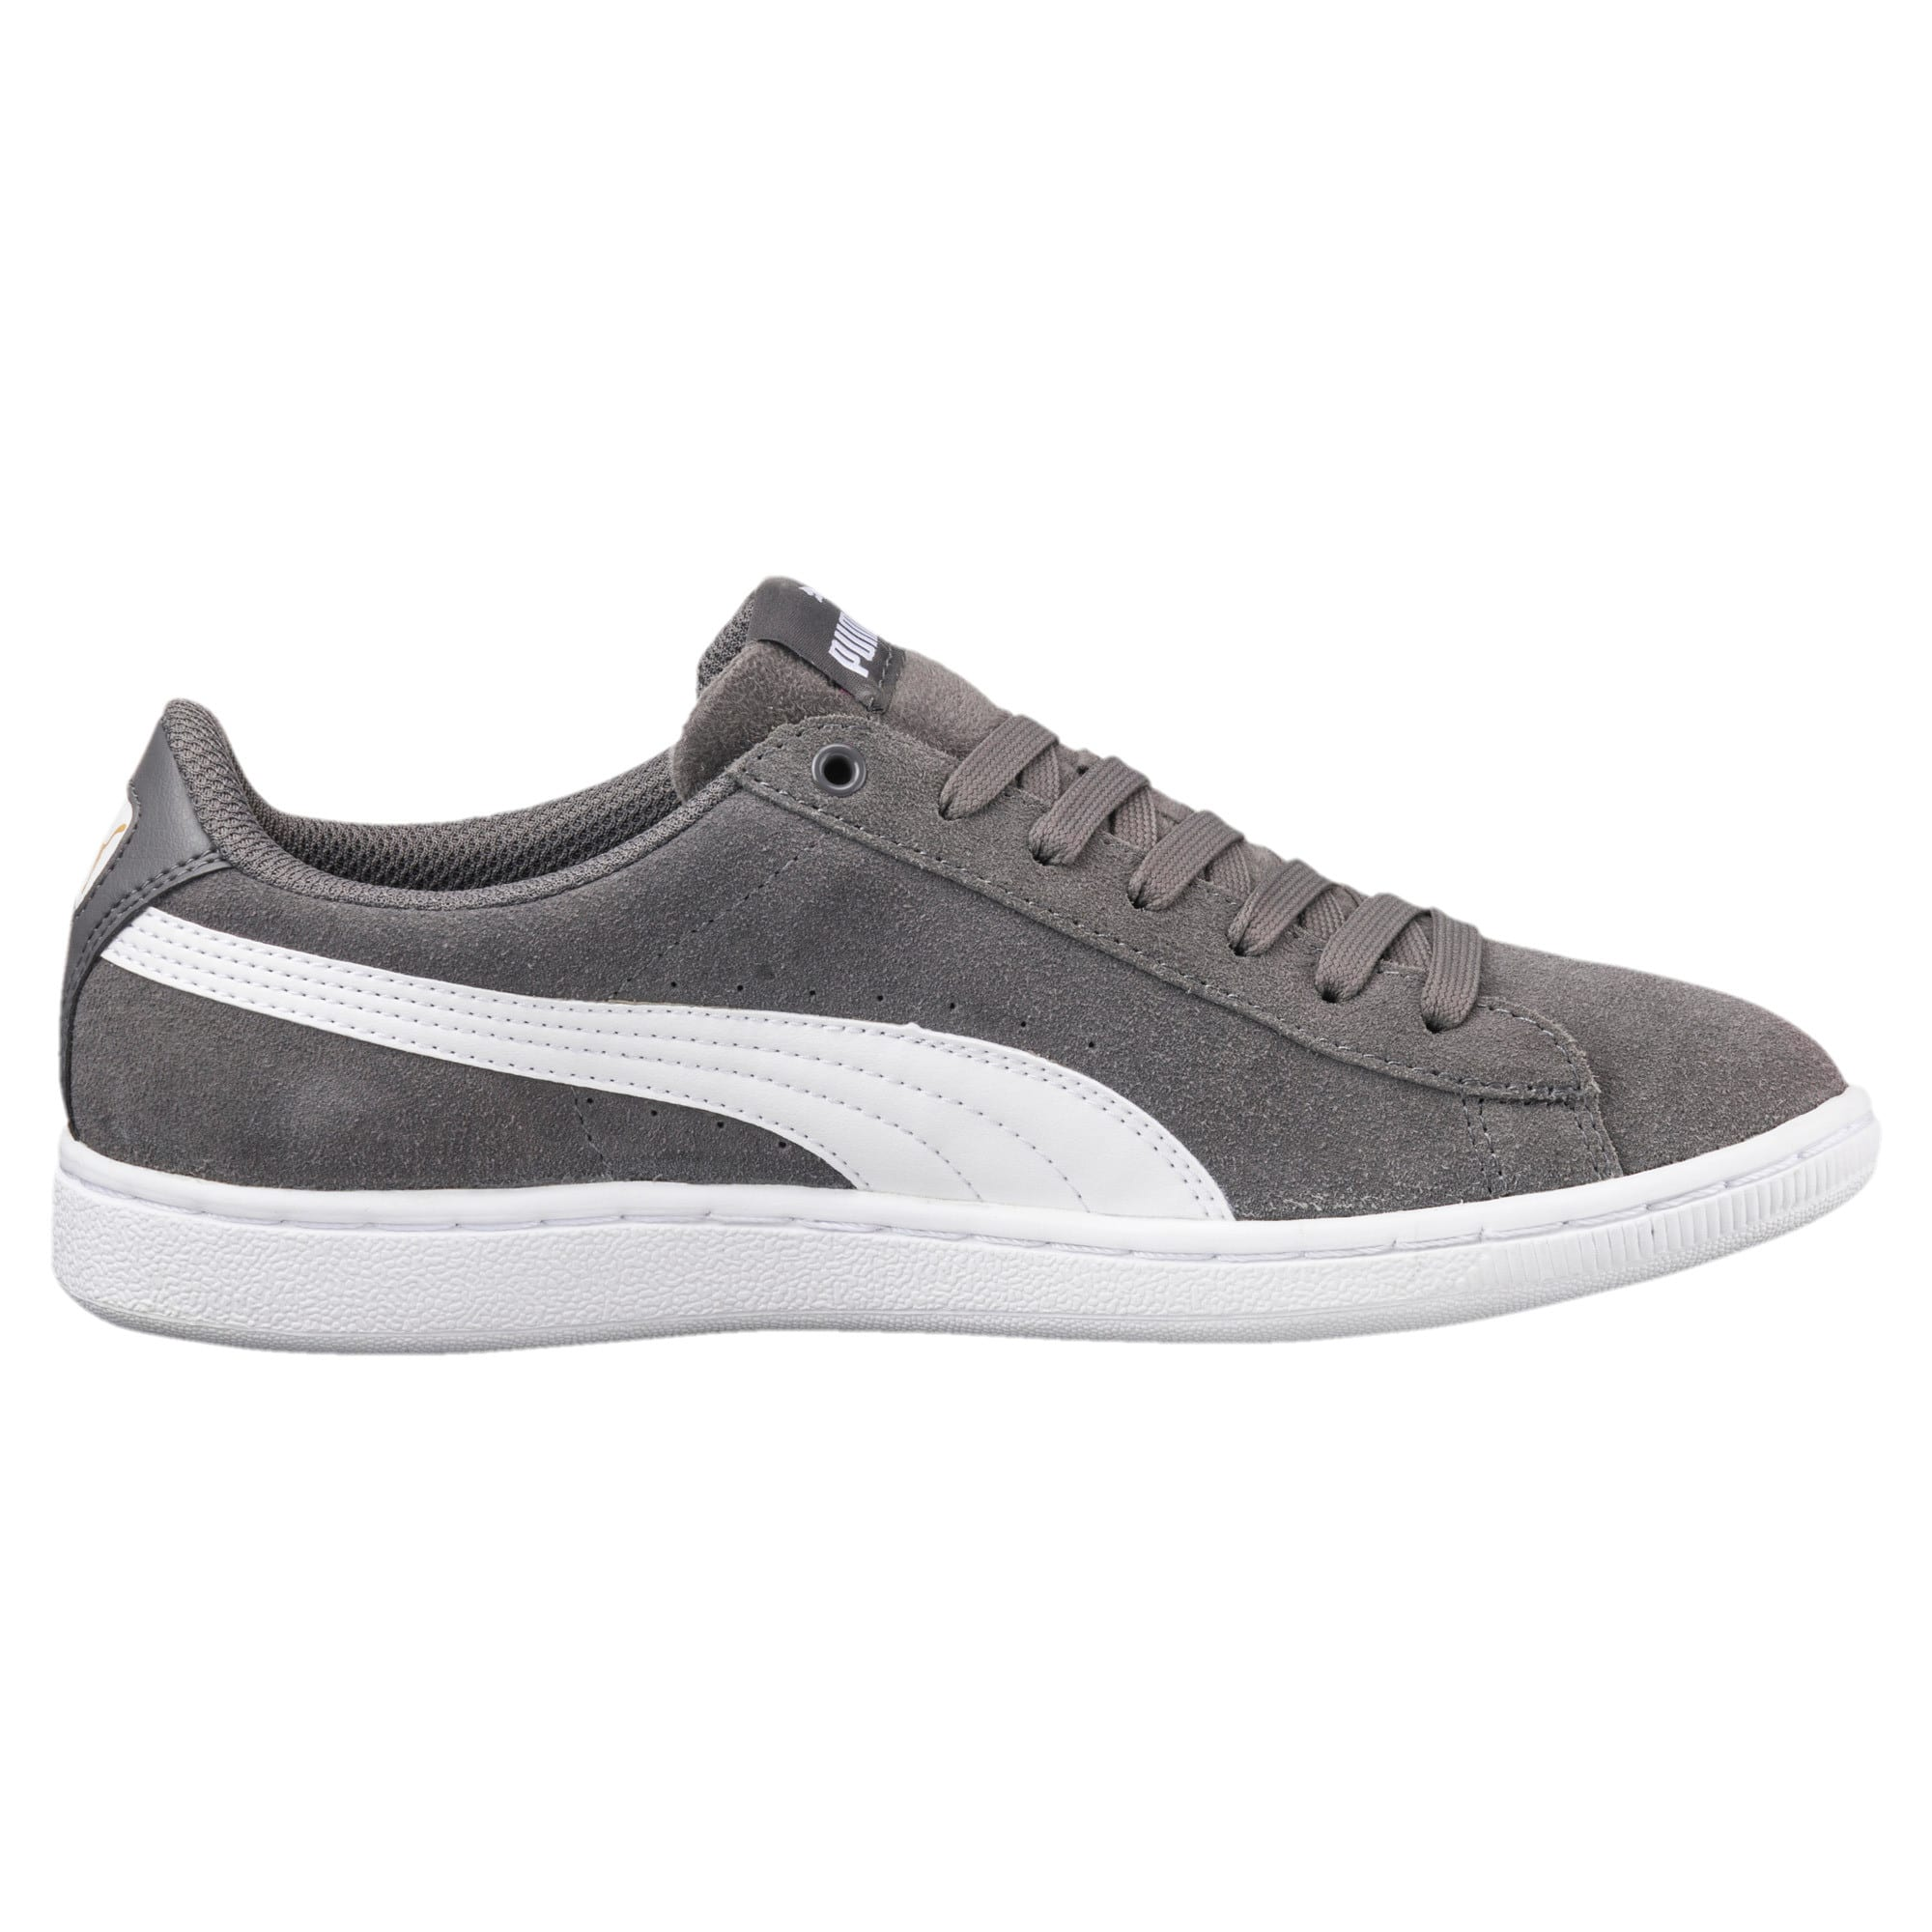 Vikky Women's Sneakers, QUIET SHADE-Puma White, large